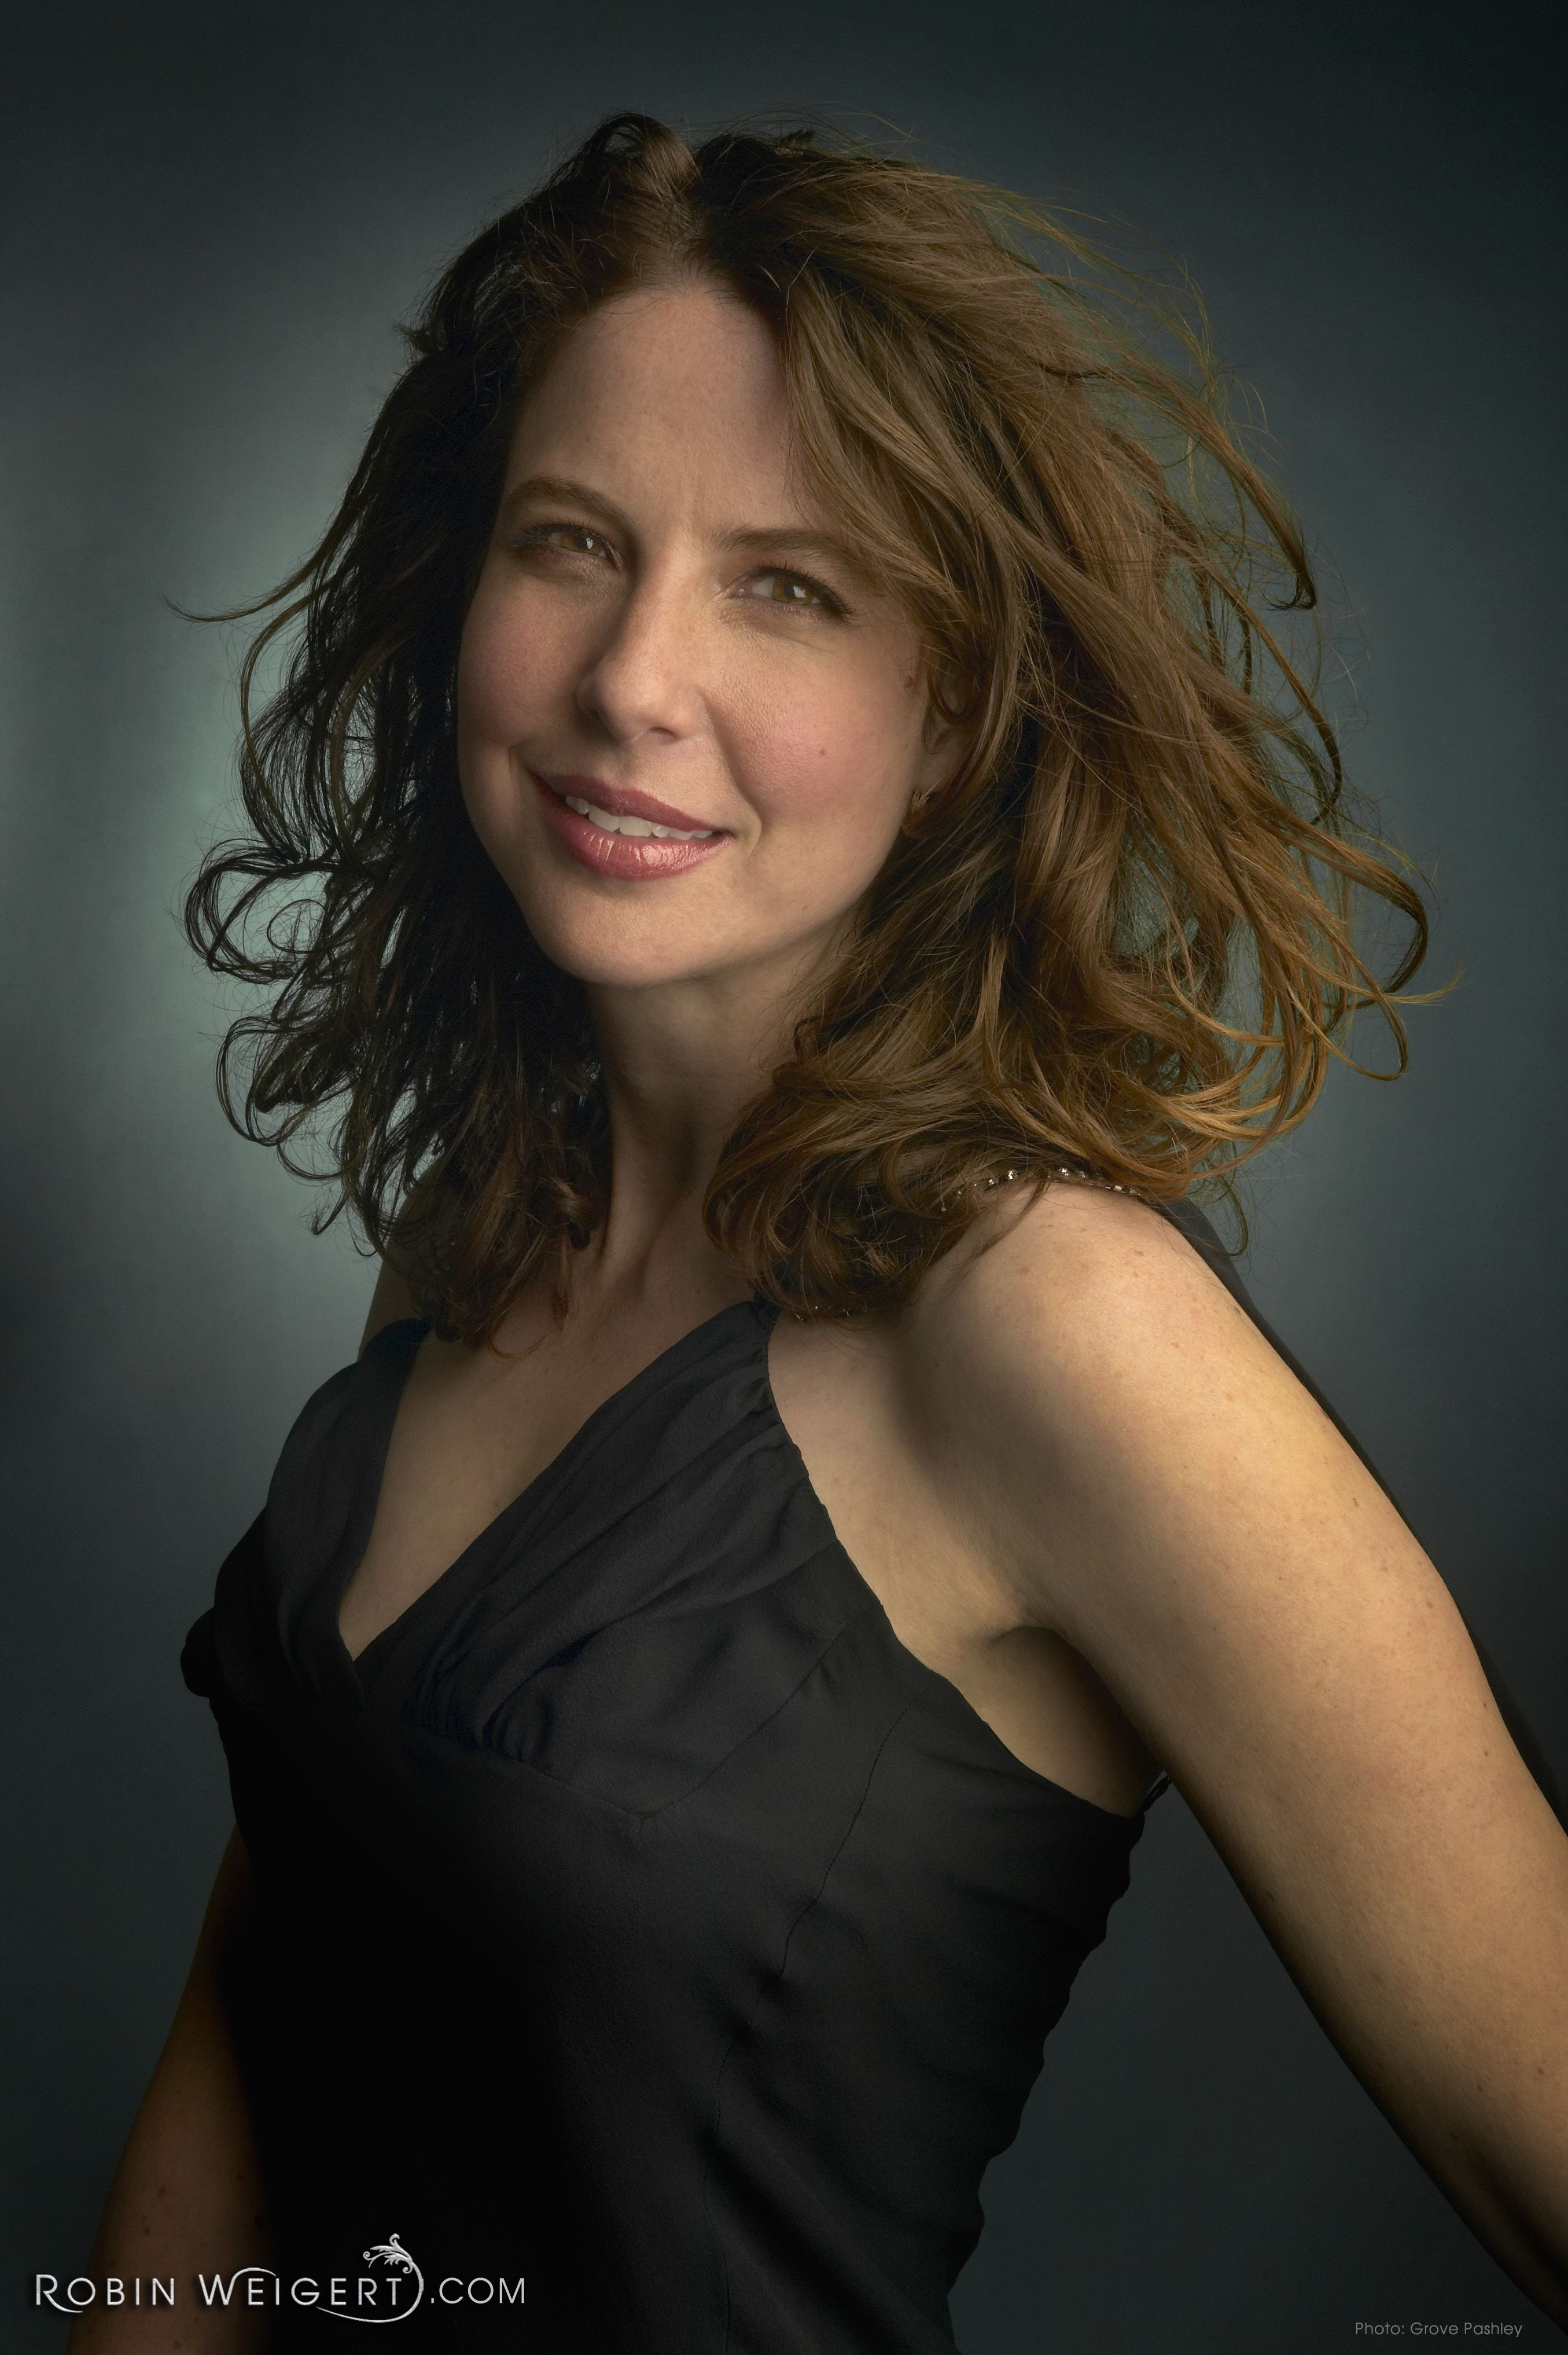 robin weigert concussion